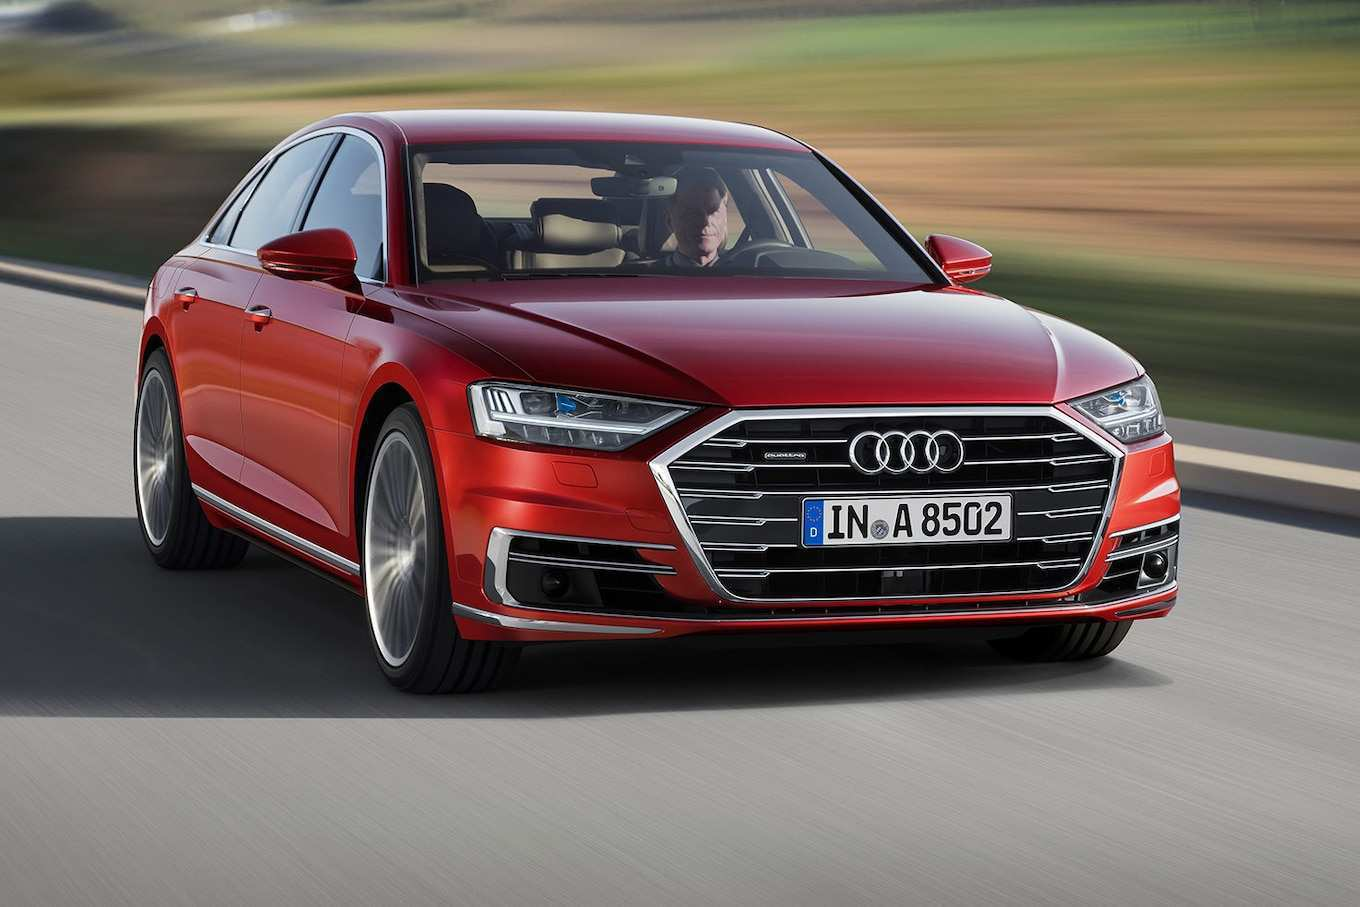 74 Great 2019 Audi A8 Debut Exterior for 2019 Audi A8 Debut